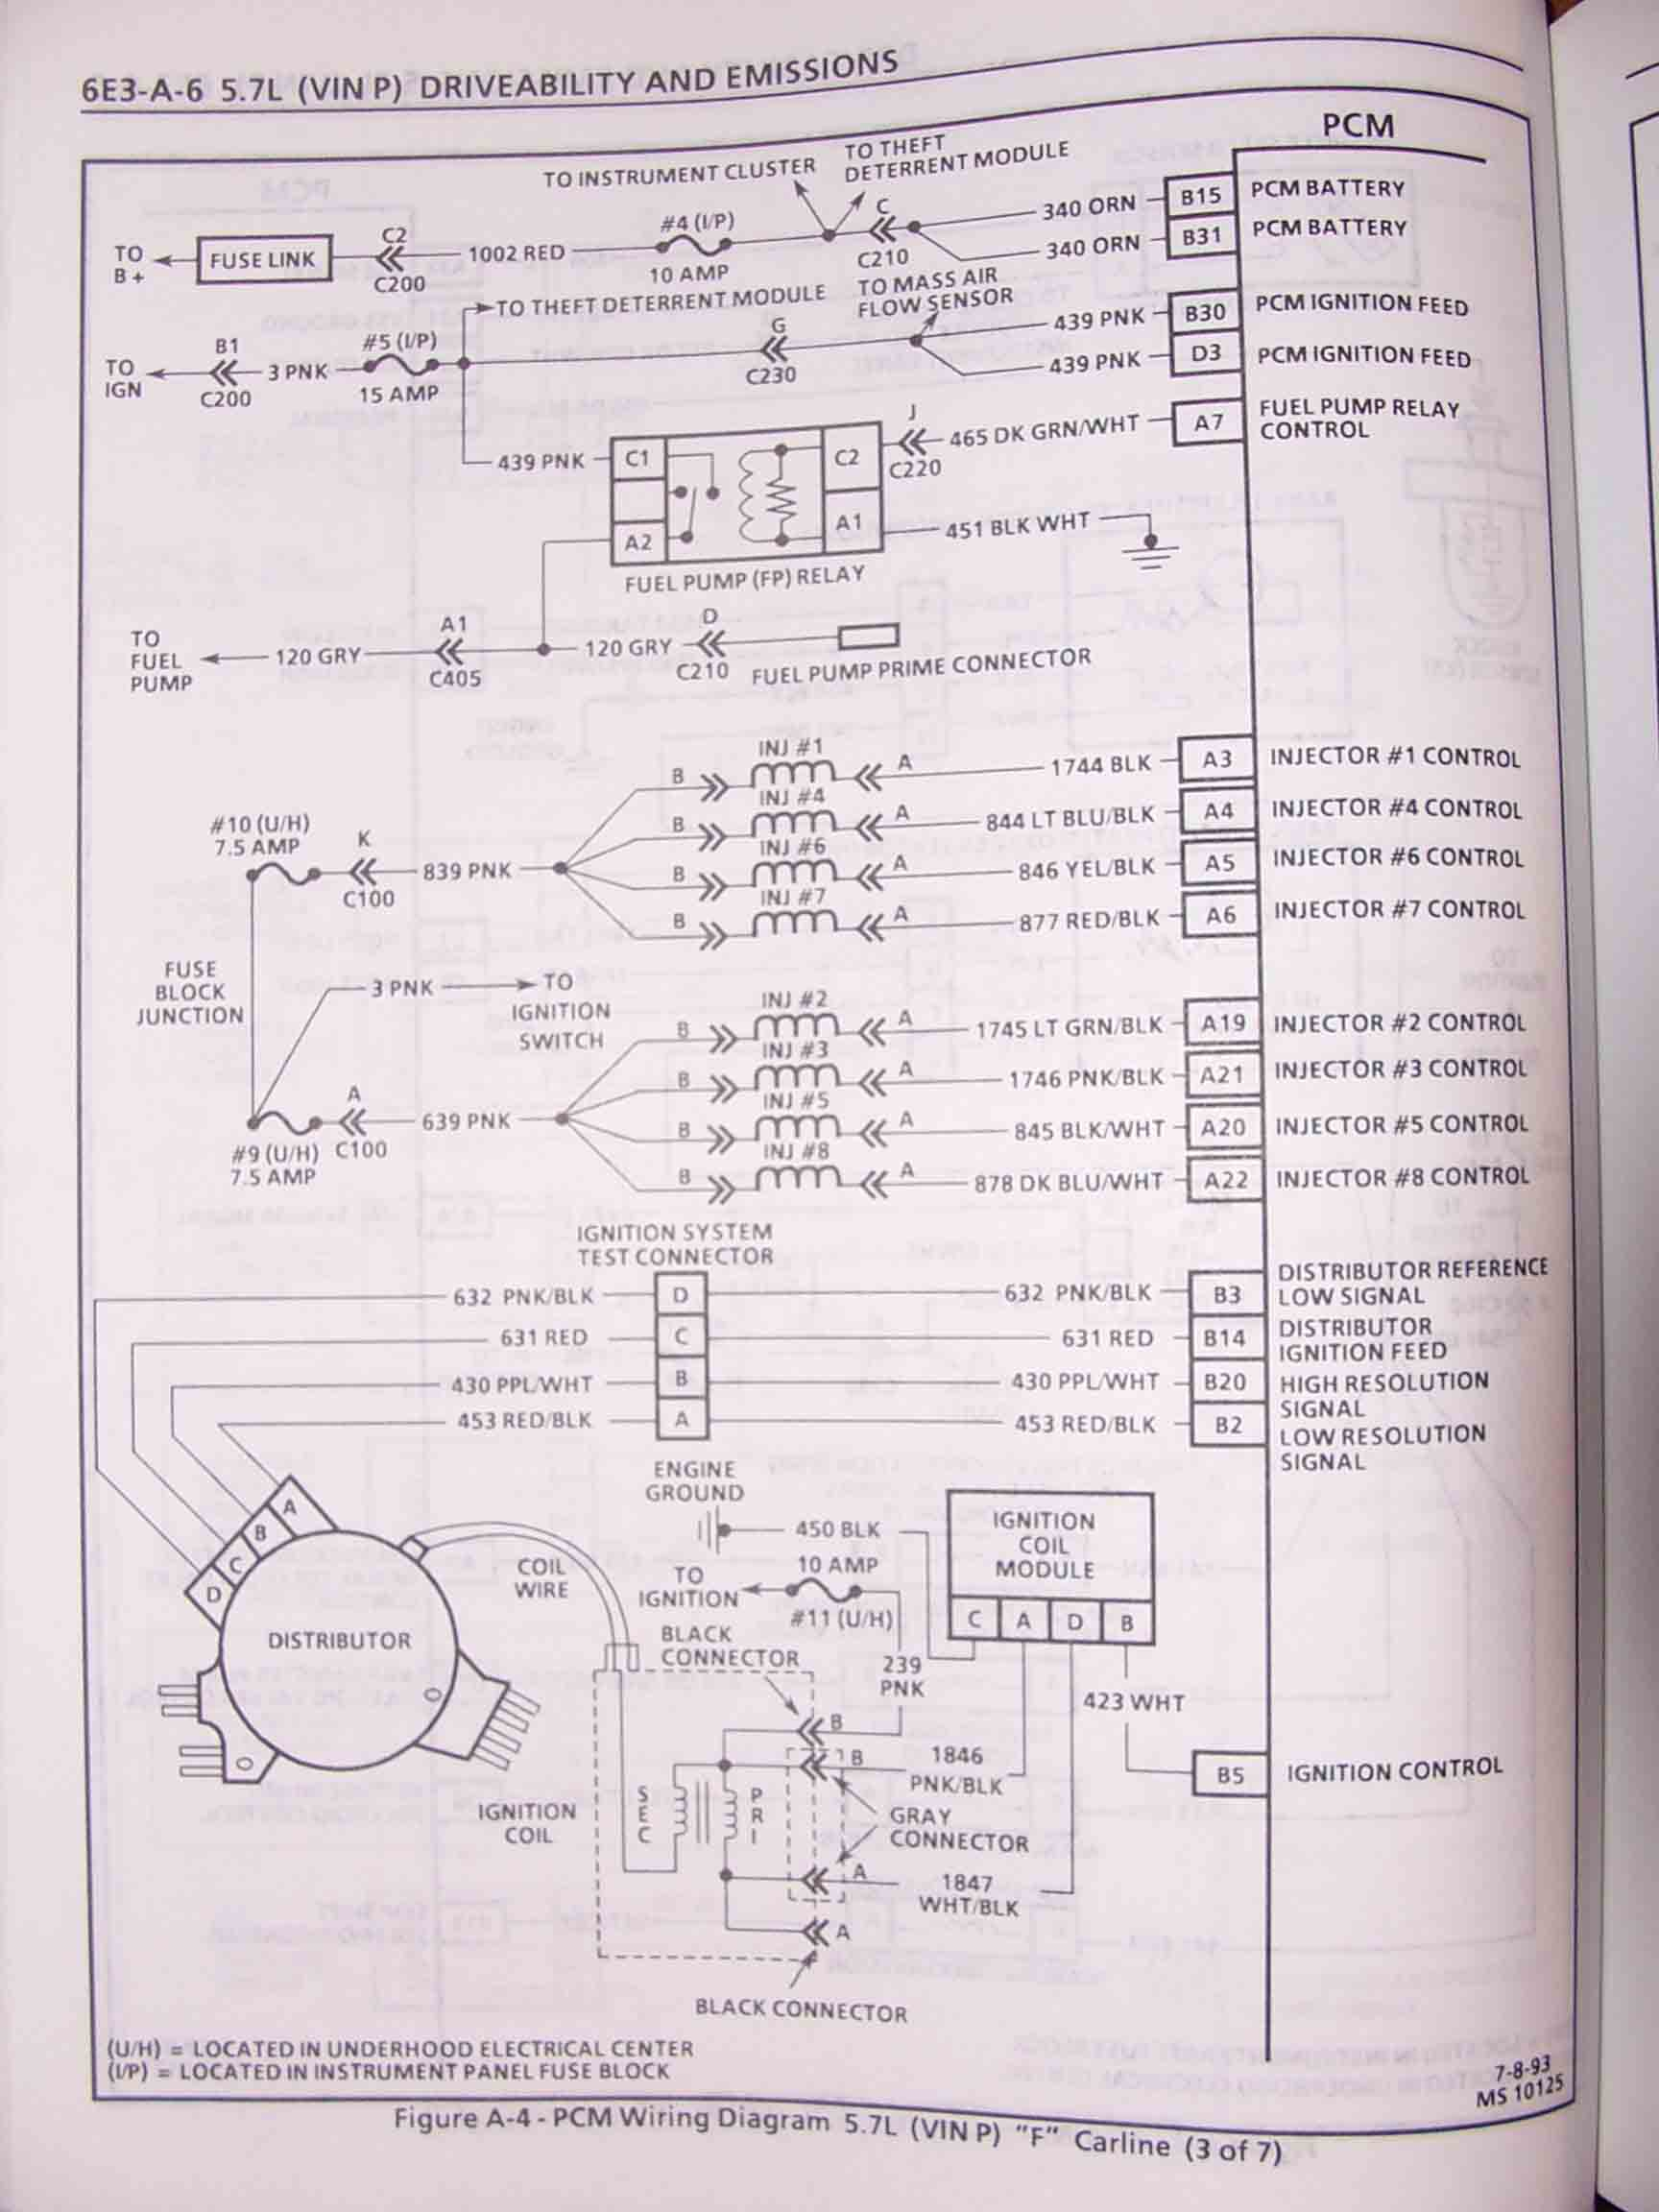 1994 Z28 Camaro Ignition Coil Wiring Diagram 44 1972 Corvette Basic 100 1775 Question No Injector Pulse After Rebuild Ls1lt1 Forum Lt1 1981